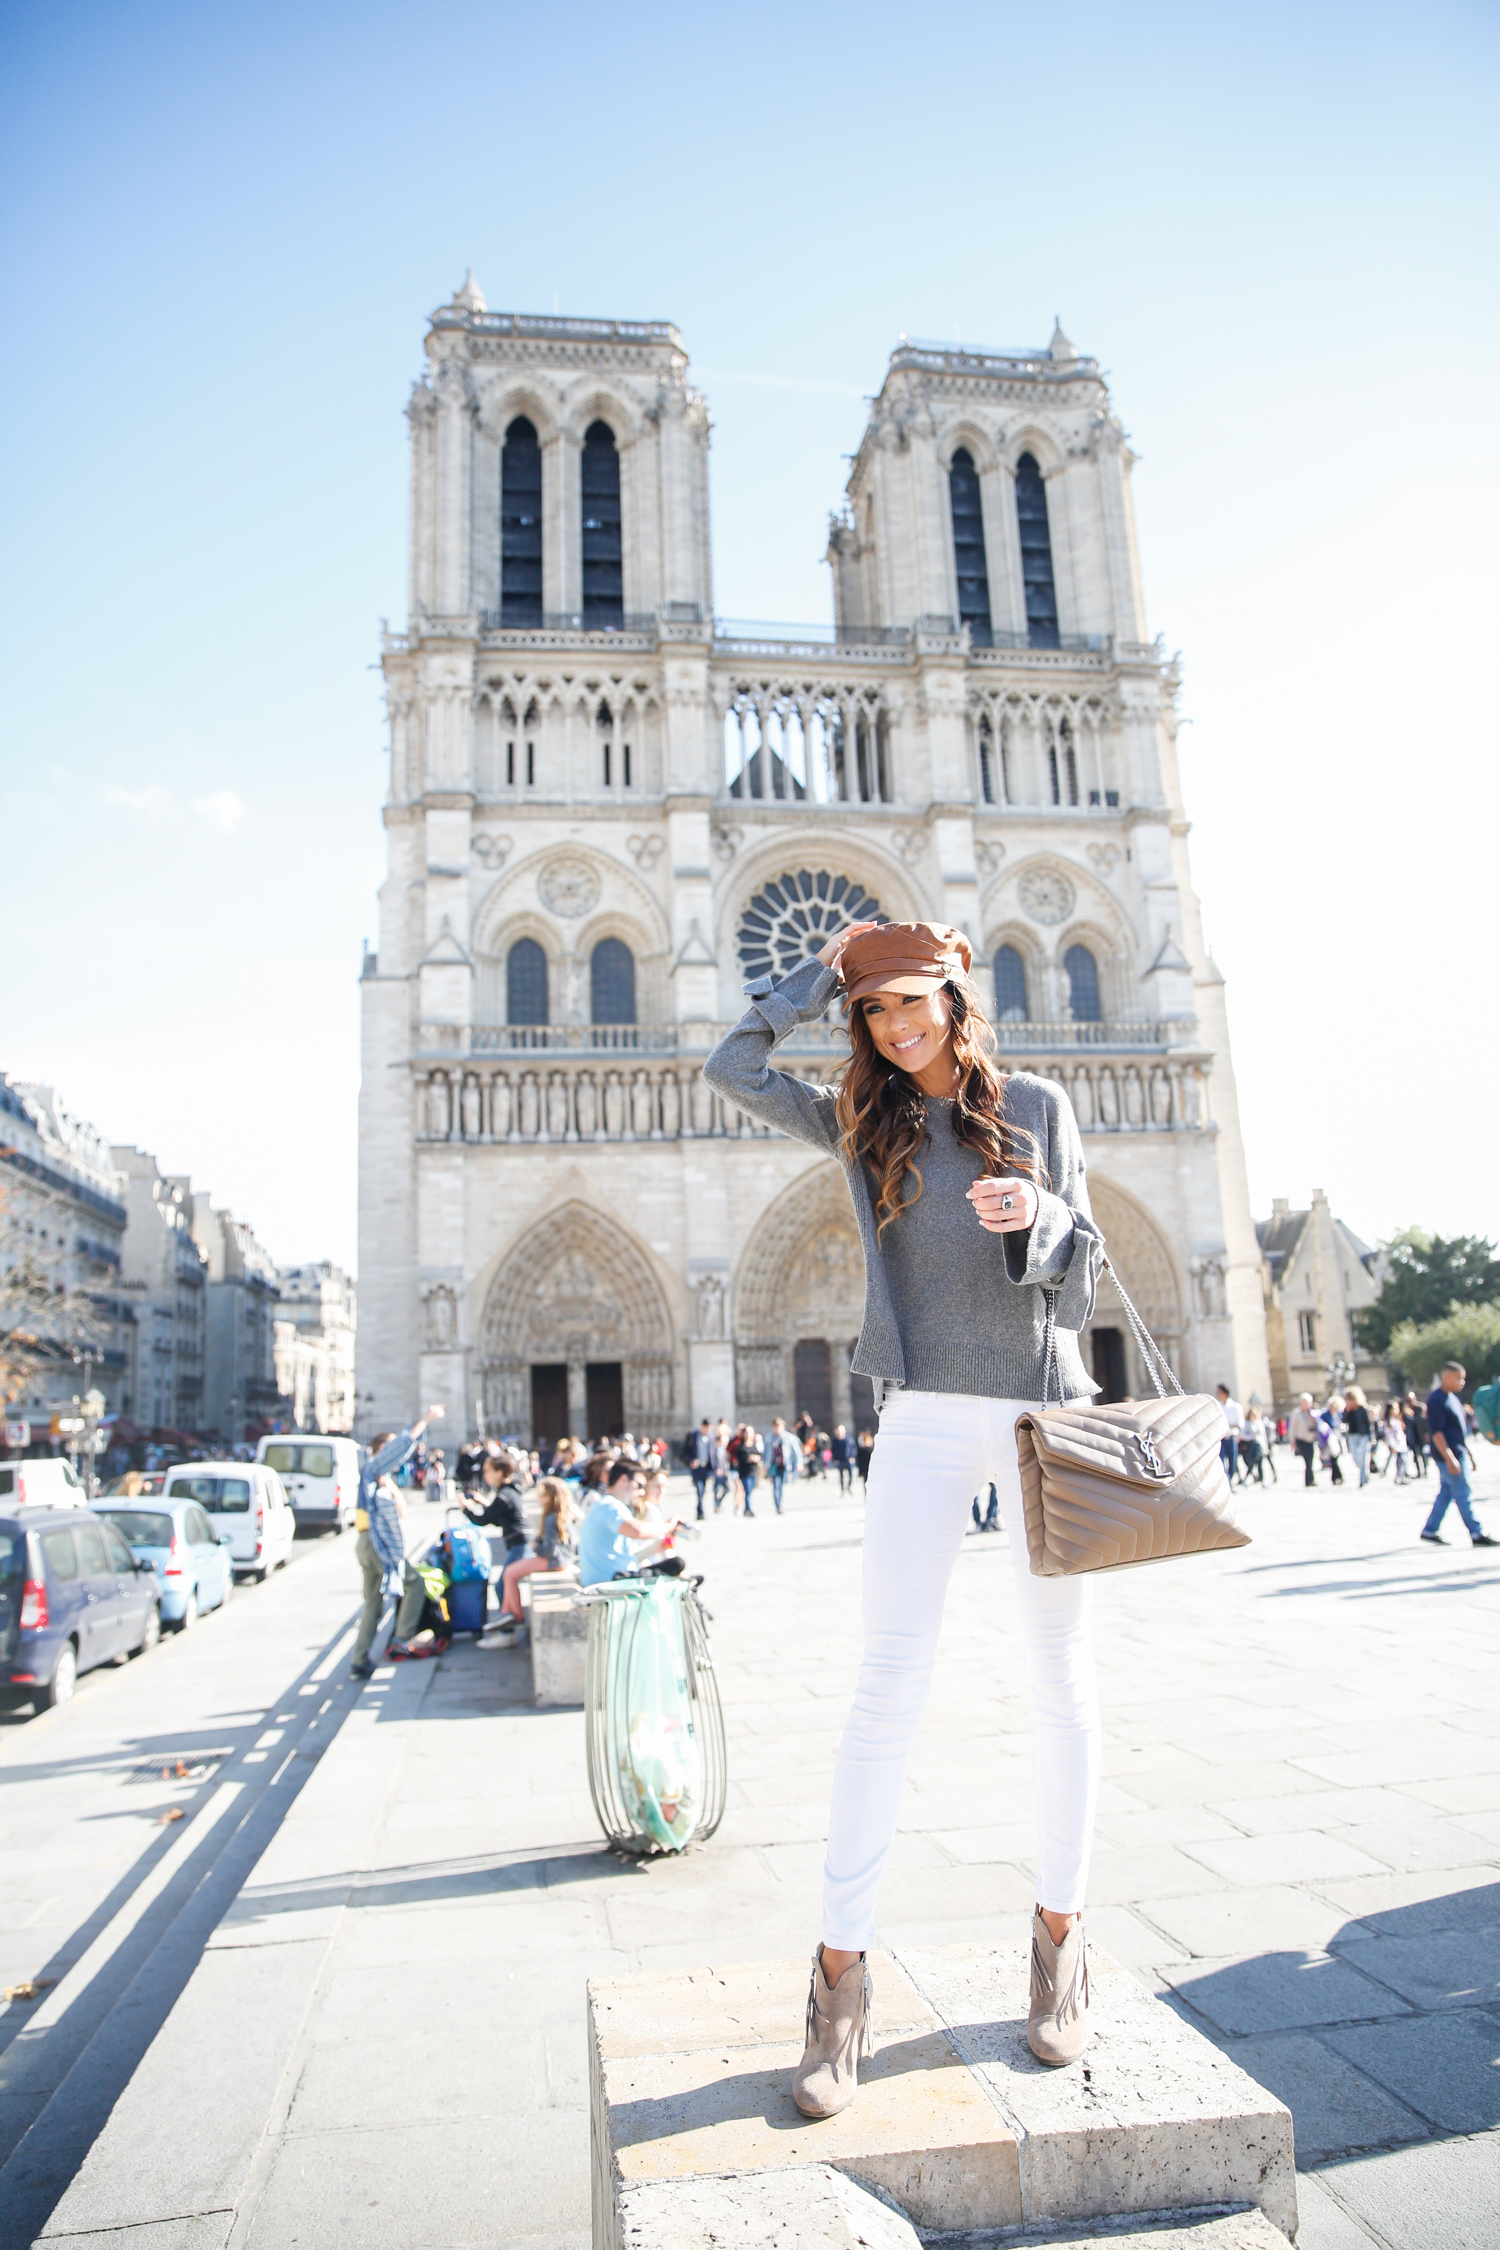 notre dame paris, notre dame, notre dame cathedral, fall outfit, fall outfit inspiration, fall outfit in paris, rag & bone booties, ysl handbag, paris france, what to wear in paris, sequins and things paris, sequins and things, sequins & things paris, sequins & things, alyson haley paris, alyson haley blog paris, alyson haley,